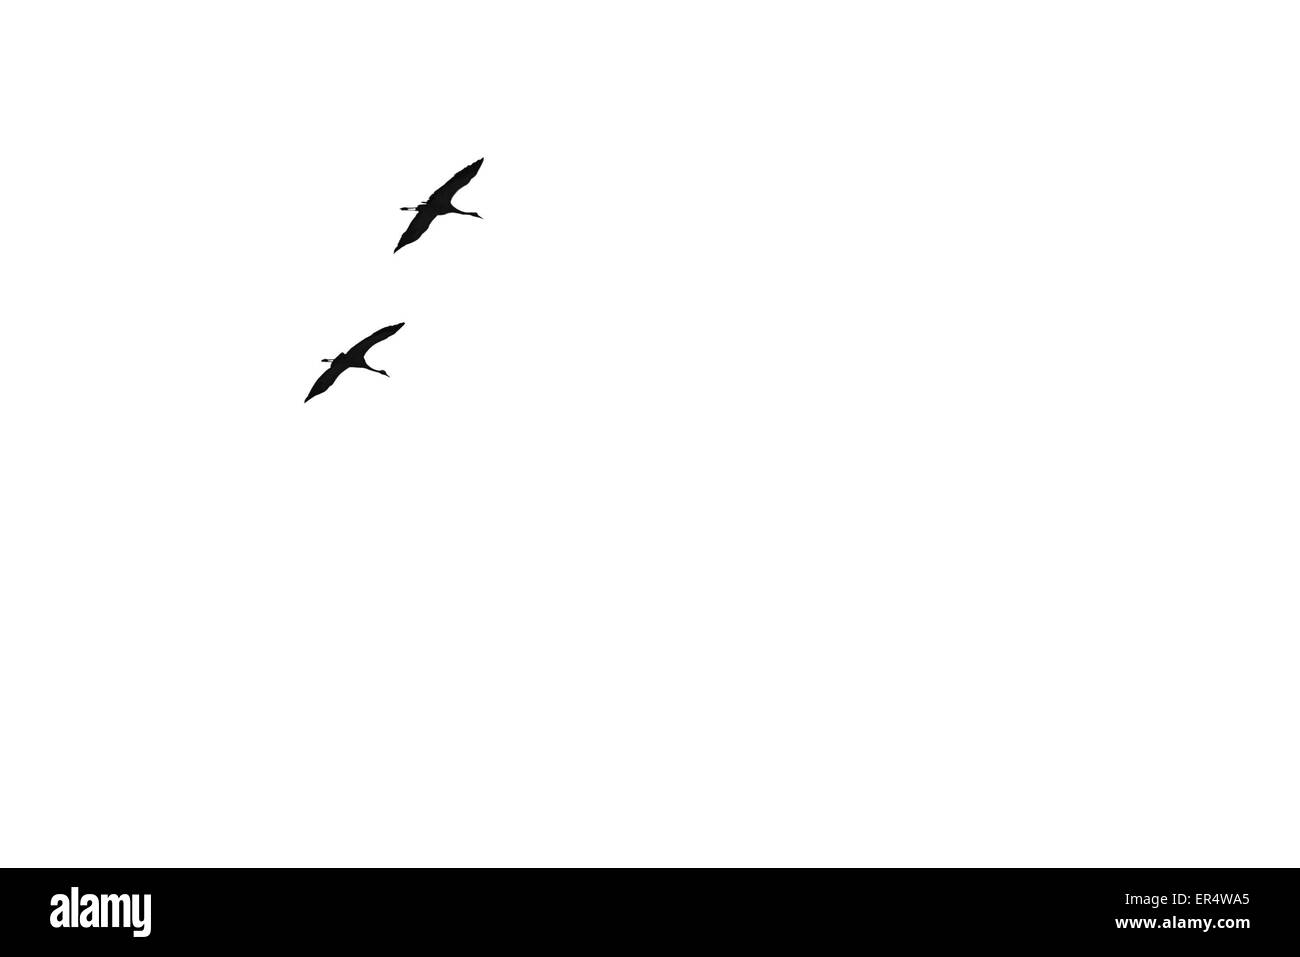 Pair of migratory birds flying in the sky - Stock Image